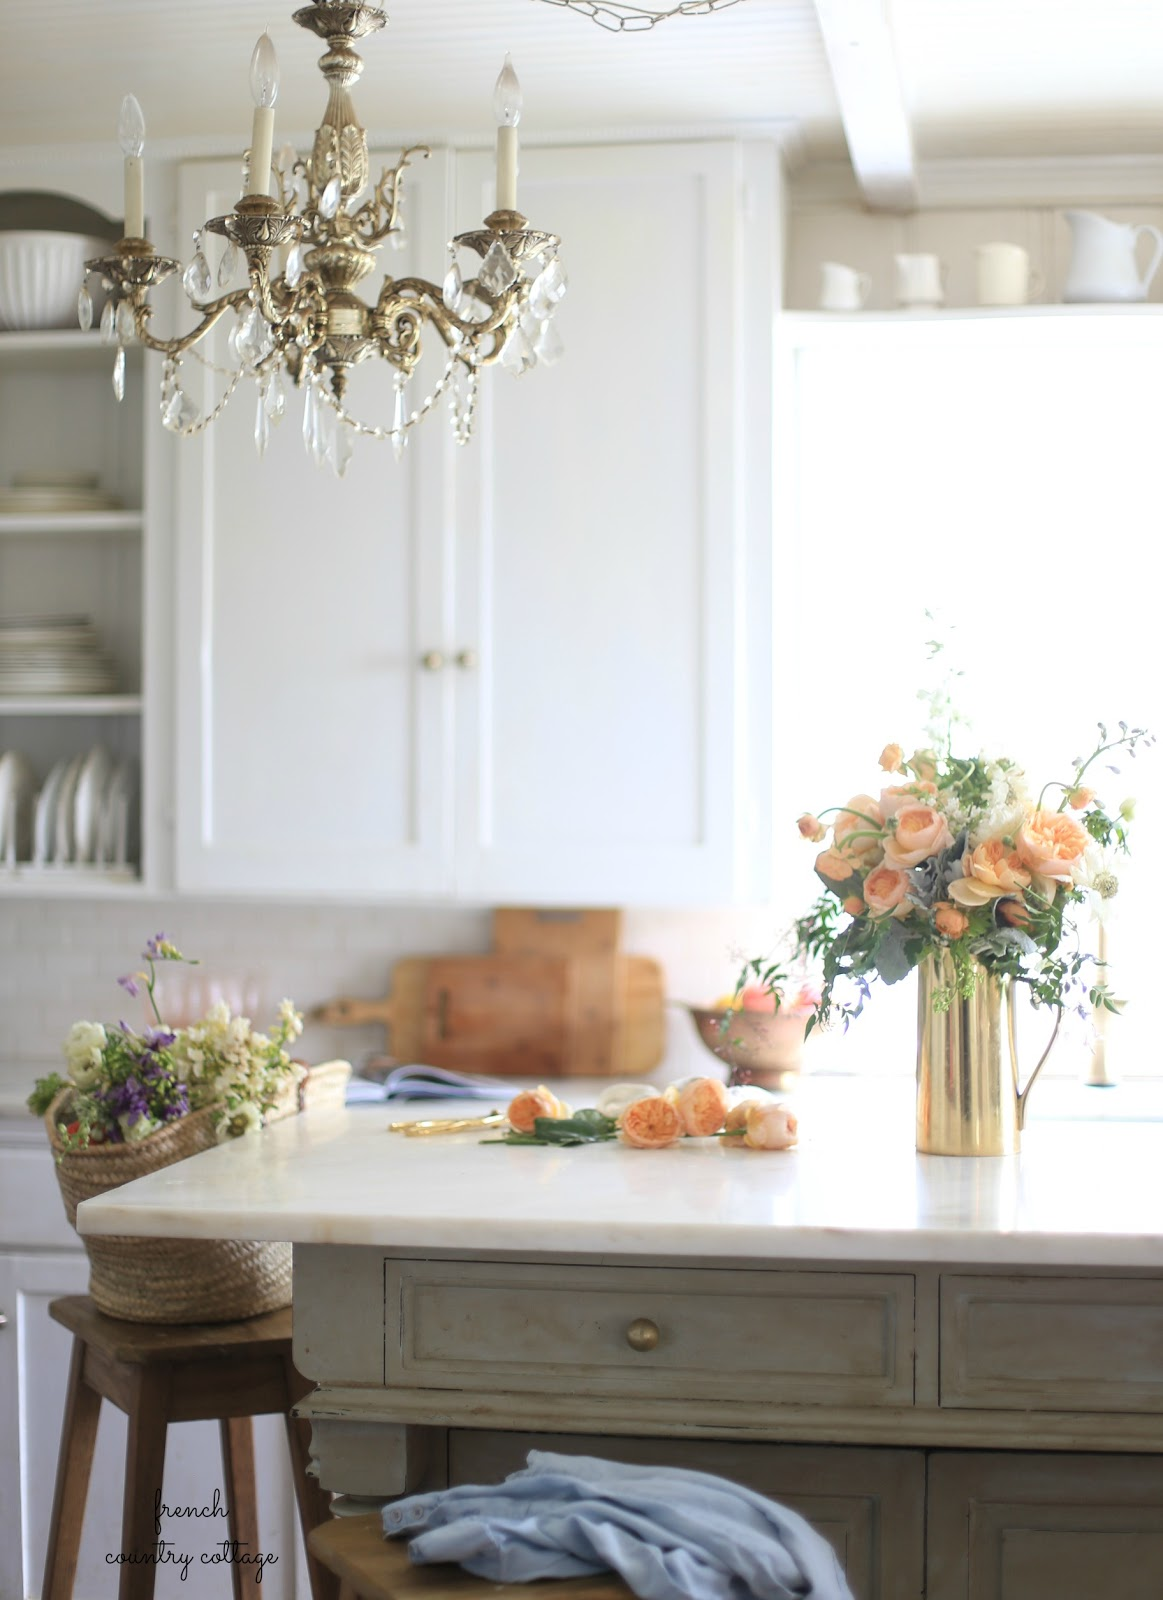 5 beautiful and affordable updates to make in your kitchen ...